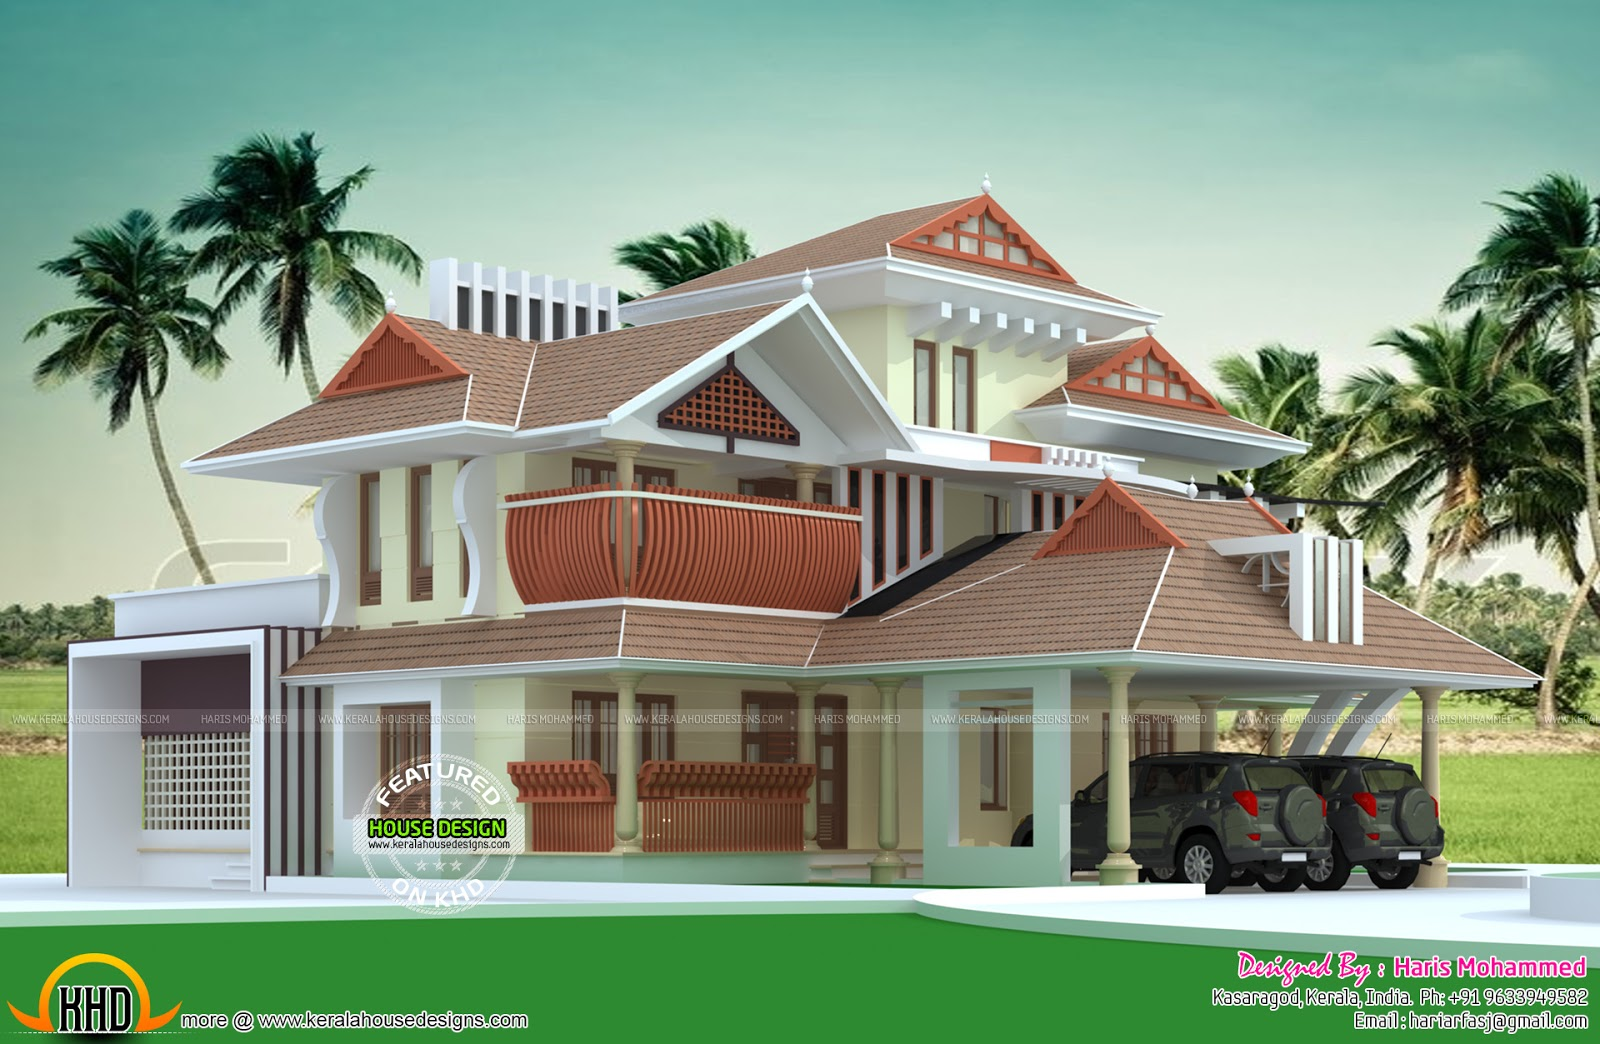 New traditional vastu based kerala home design kerala for Home designs in kerala